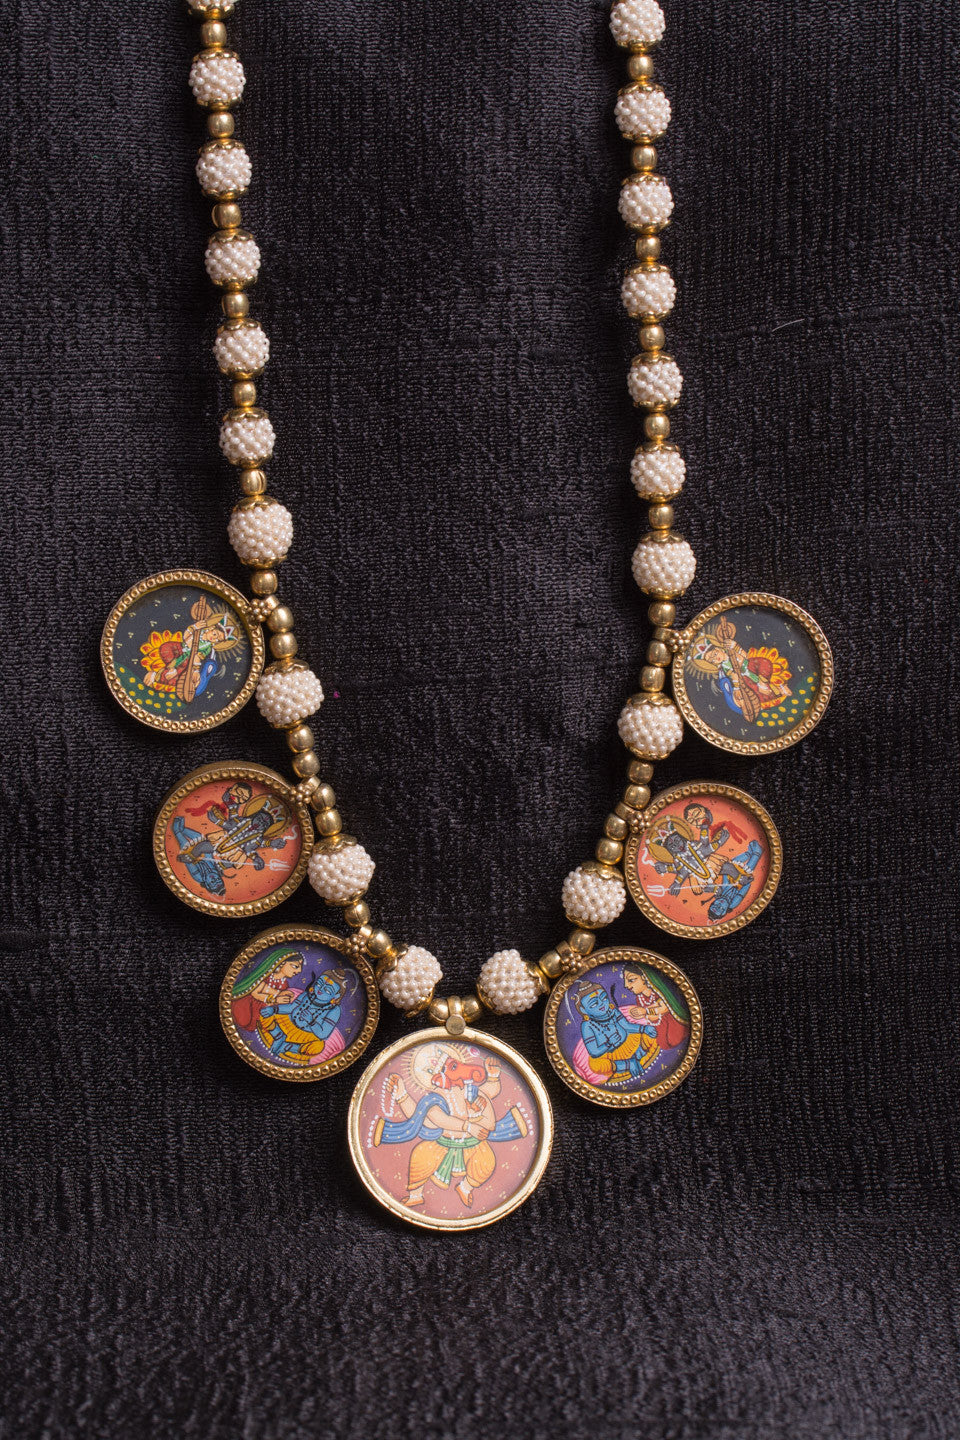 20a512-silver-gold-plated-amrapali-necklace-hand-painted-hindu-deities-pearl